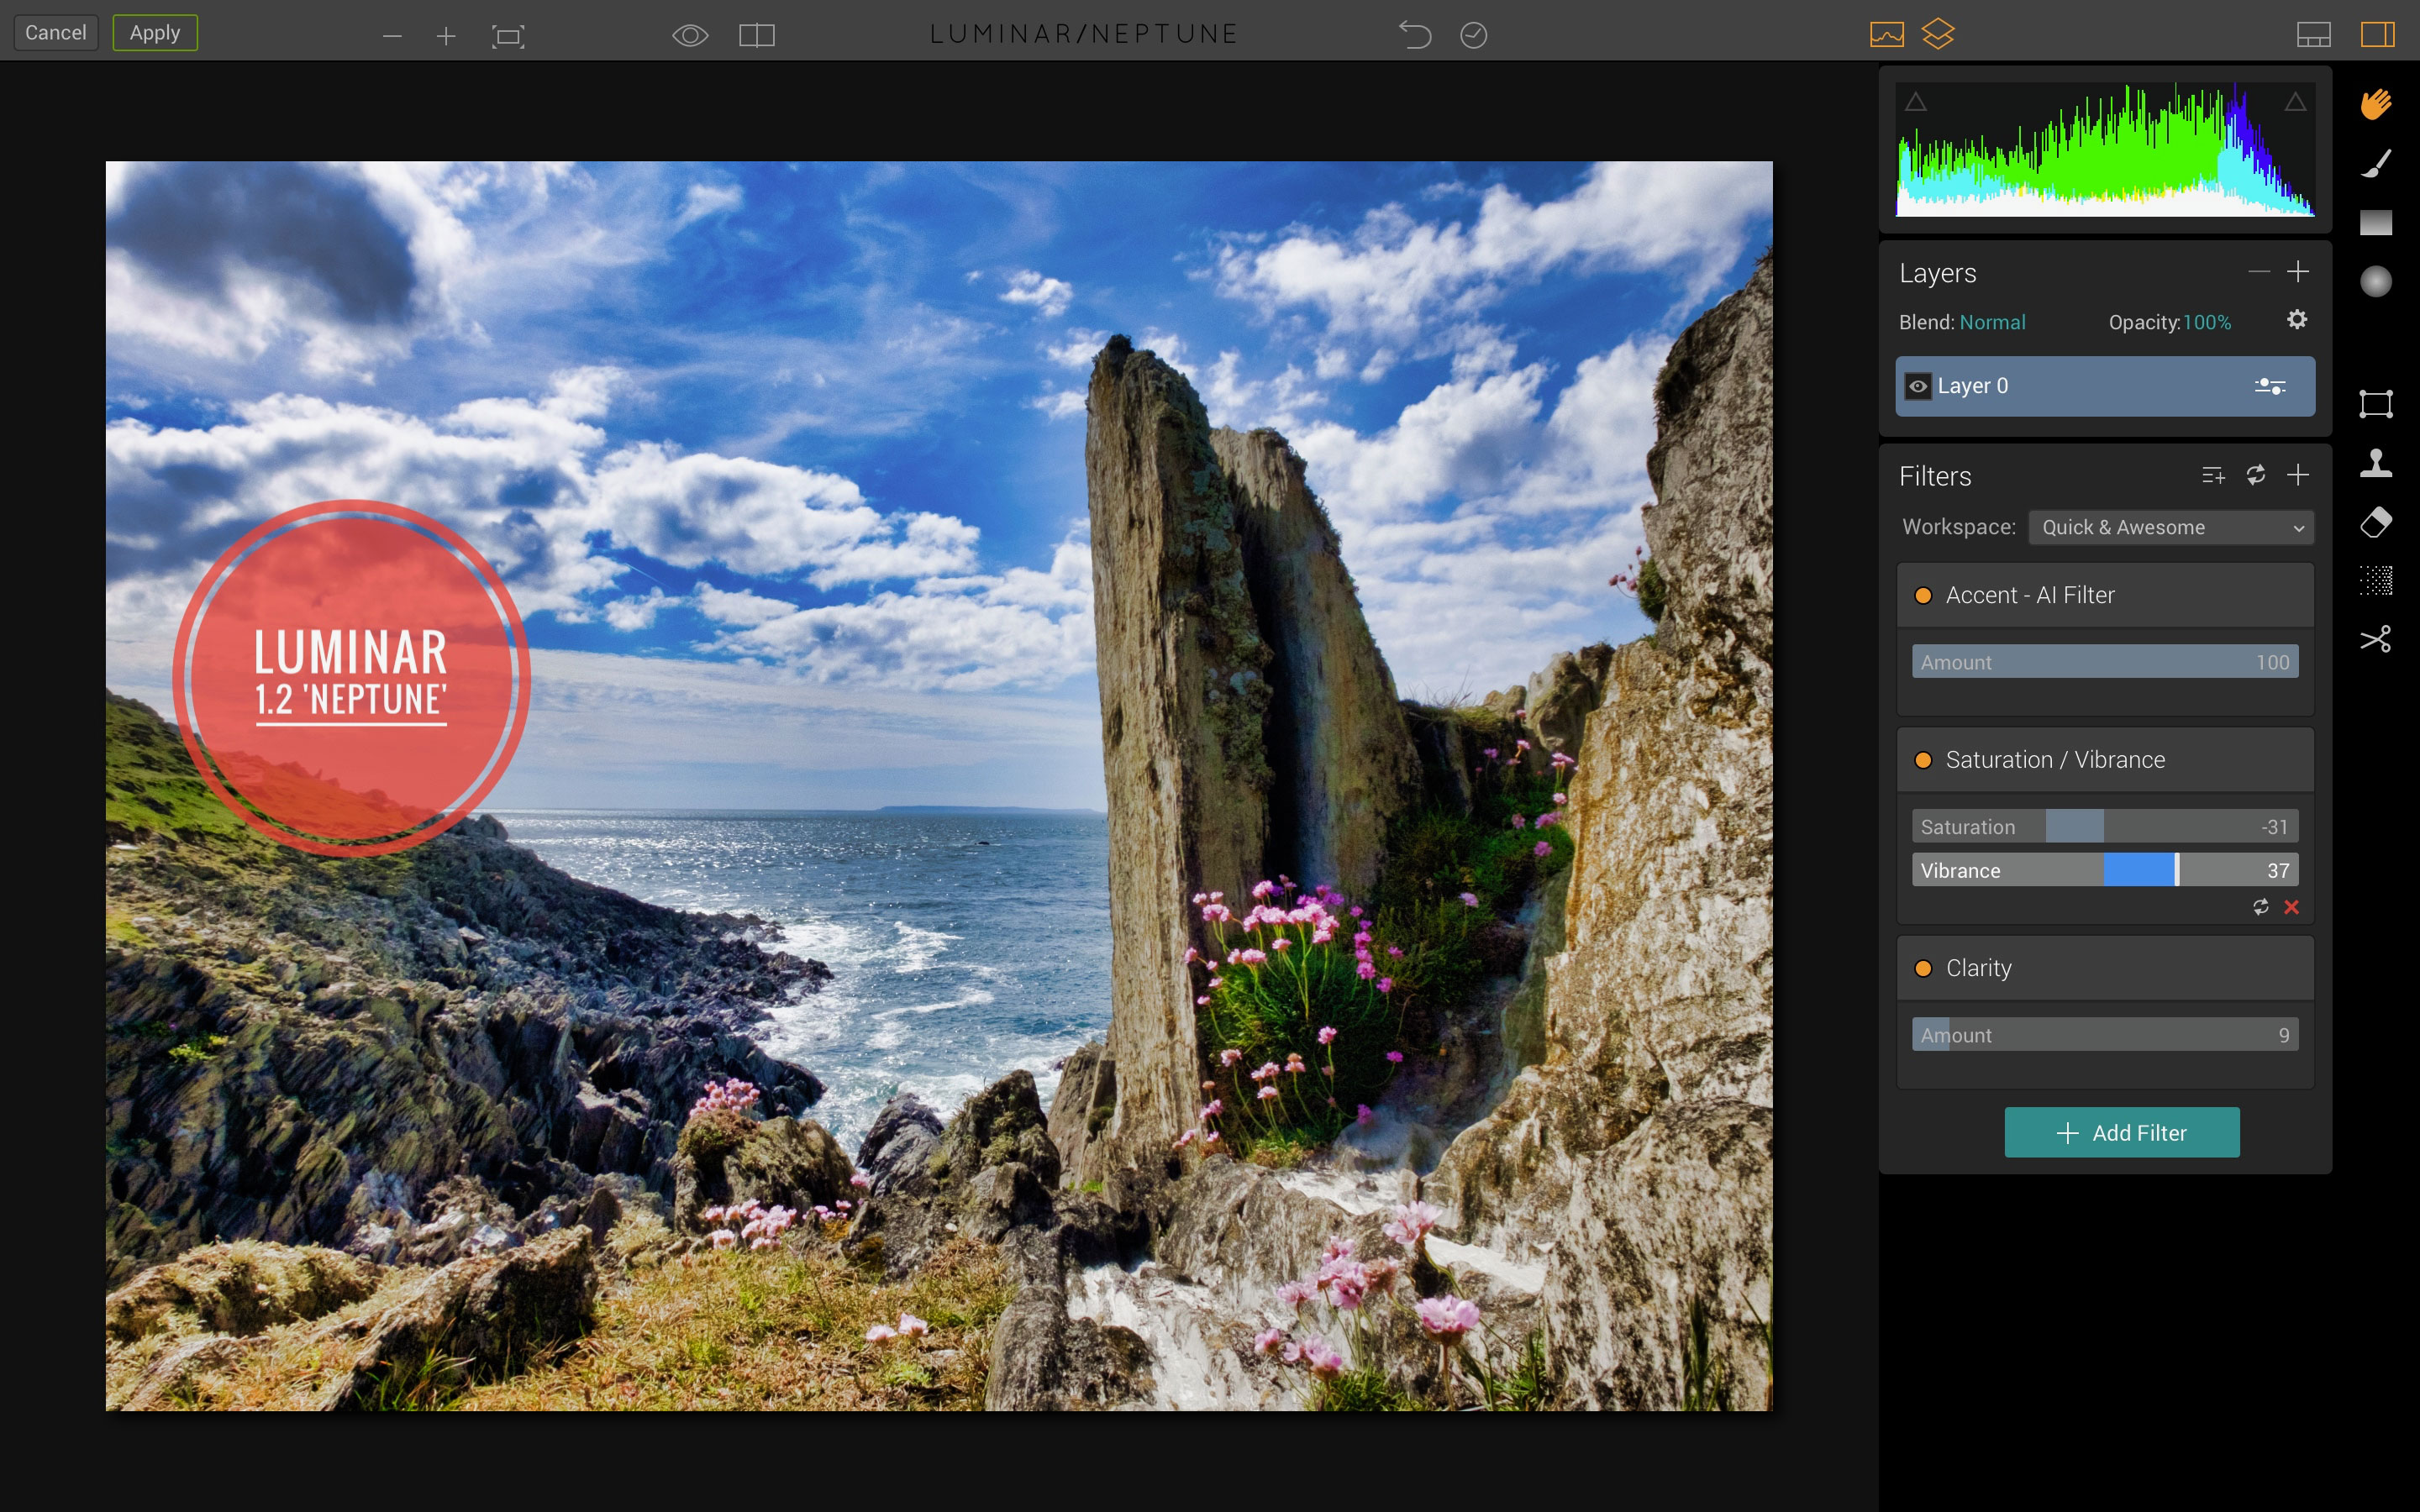 Using the Luminar Quick & Awesome workspace